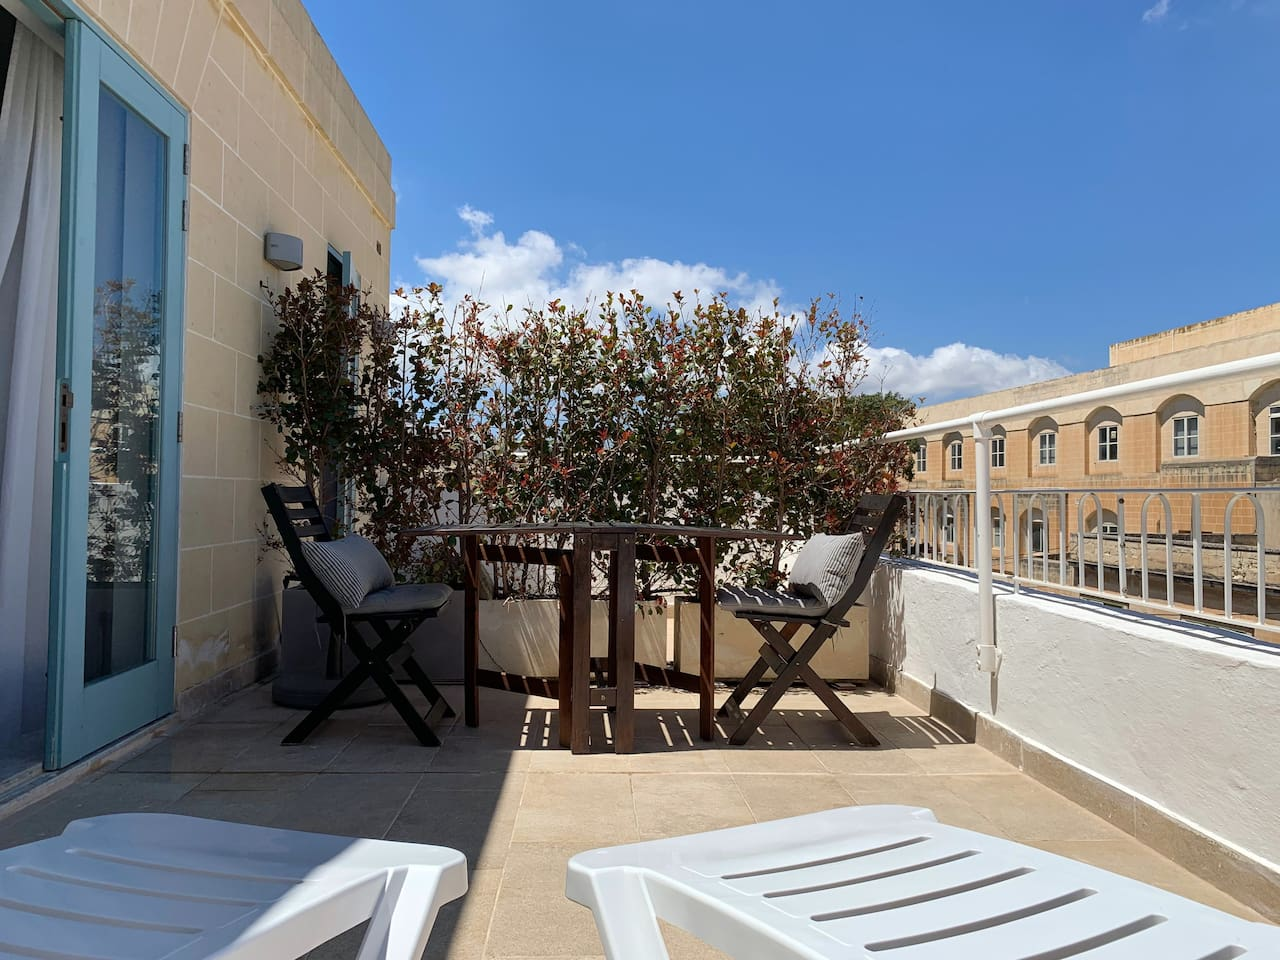 This is your private penthouse terrace - perfect for sunbathing and dining, with views of the area.